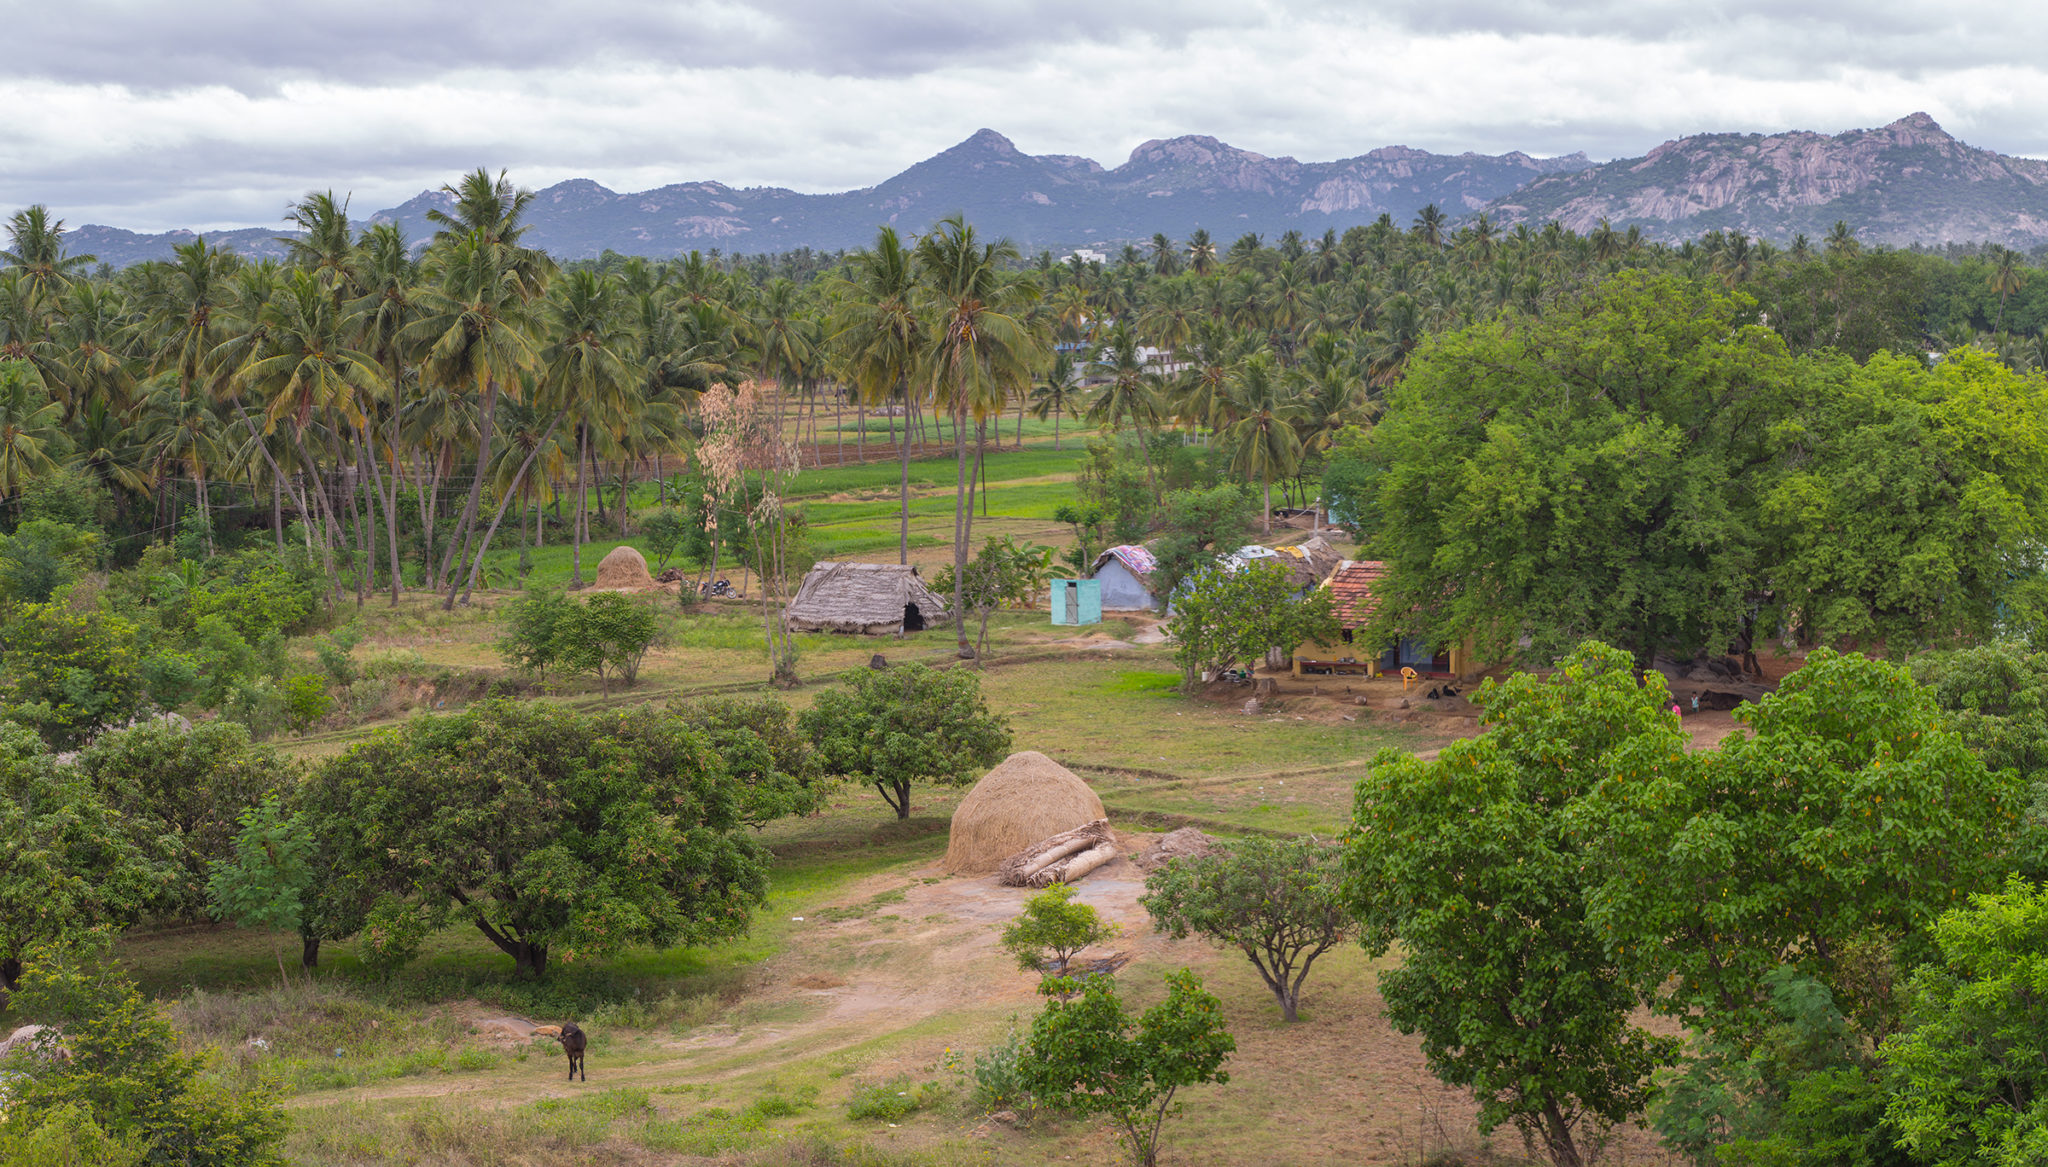 A village view in Krishnagiri